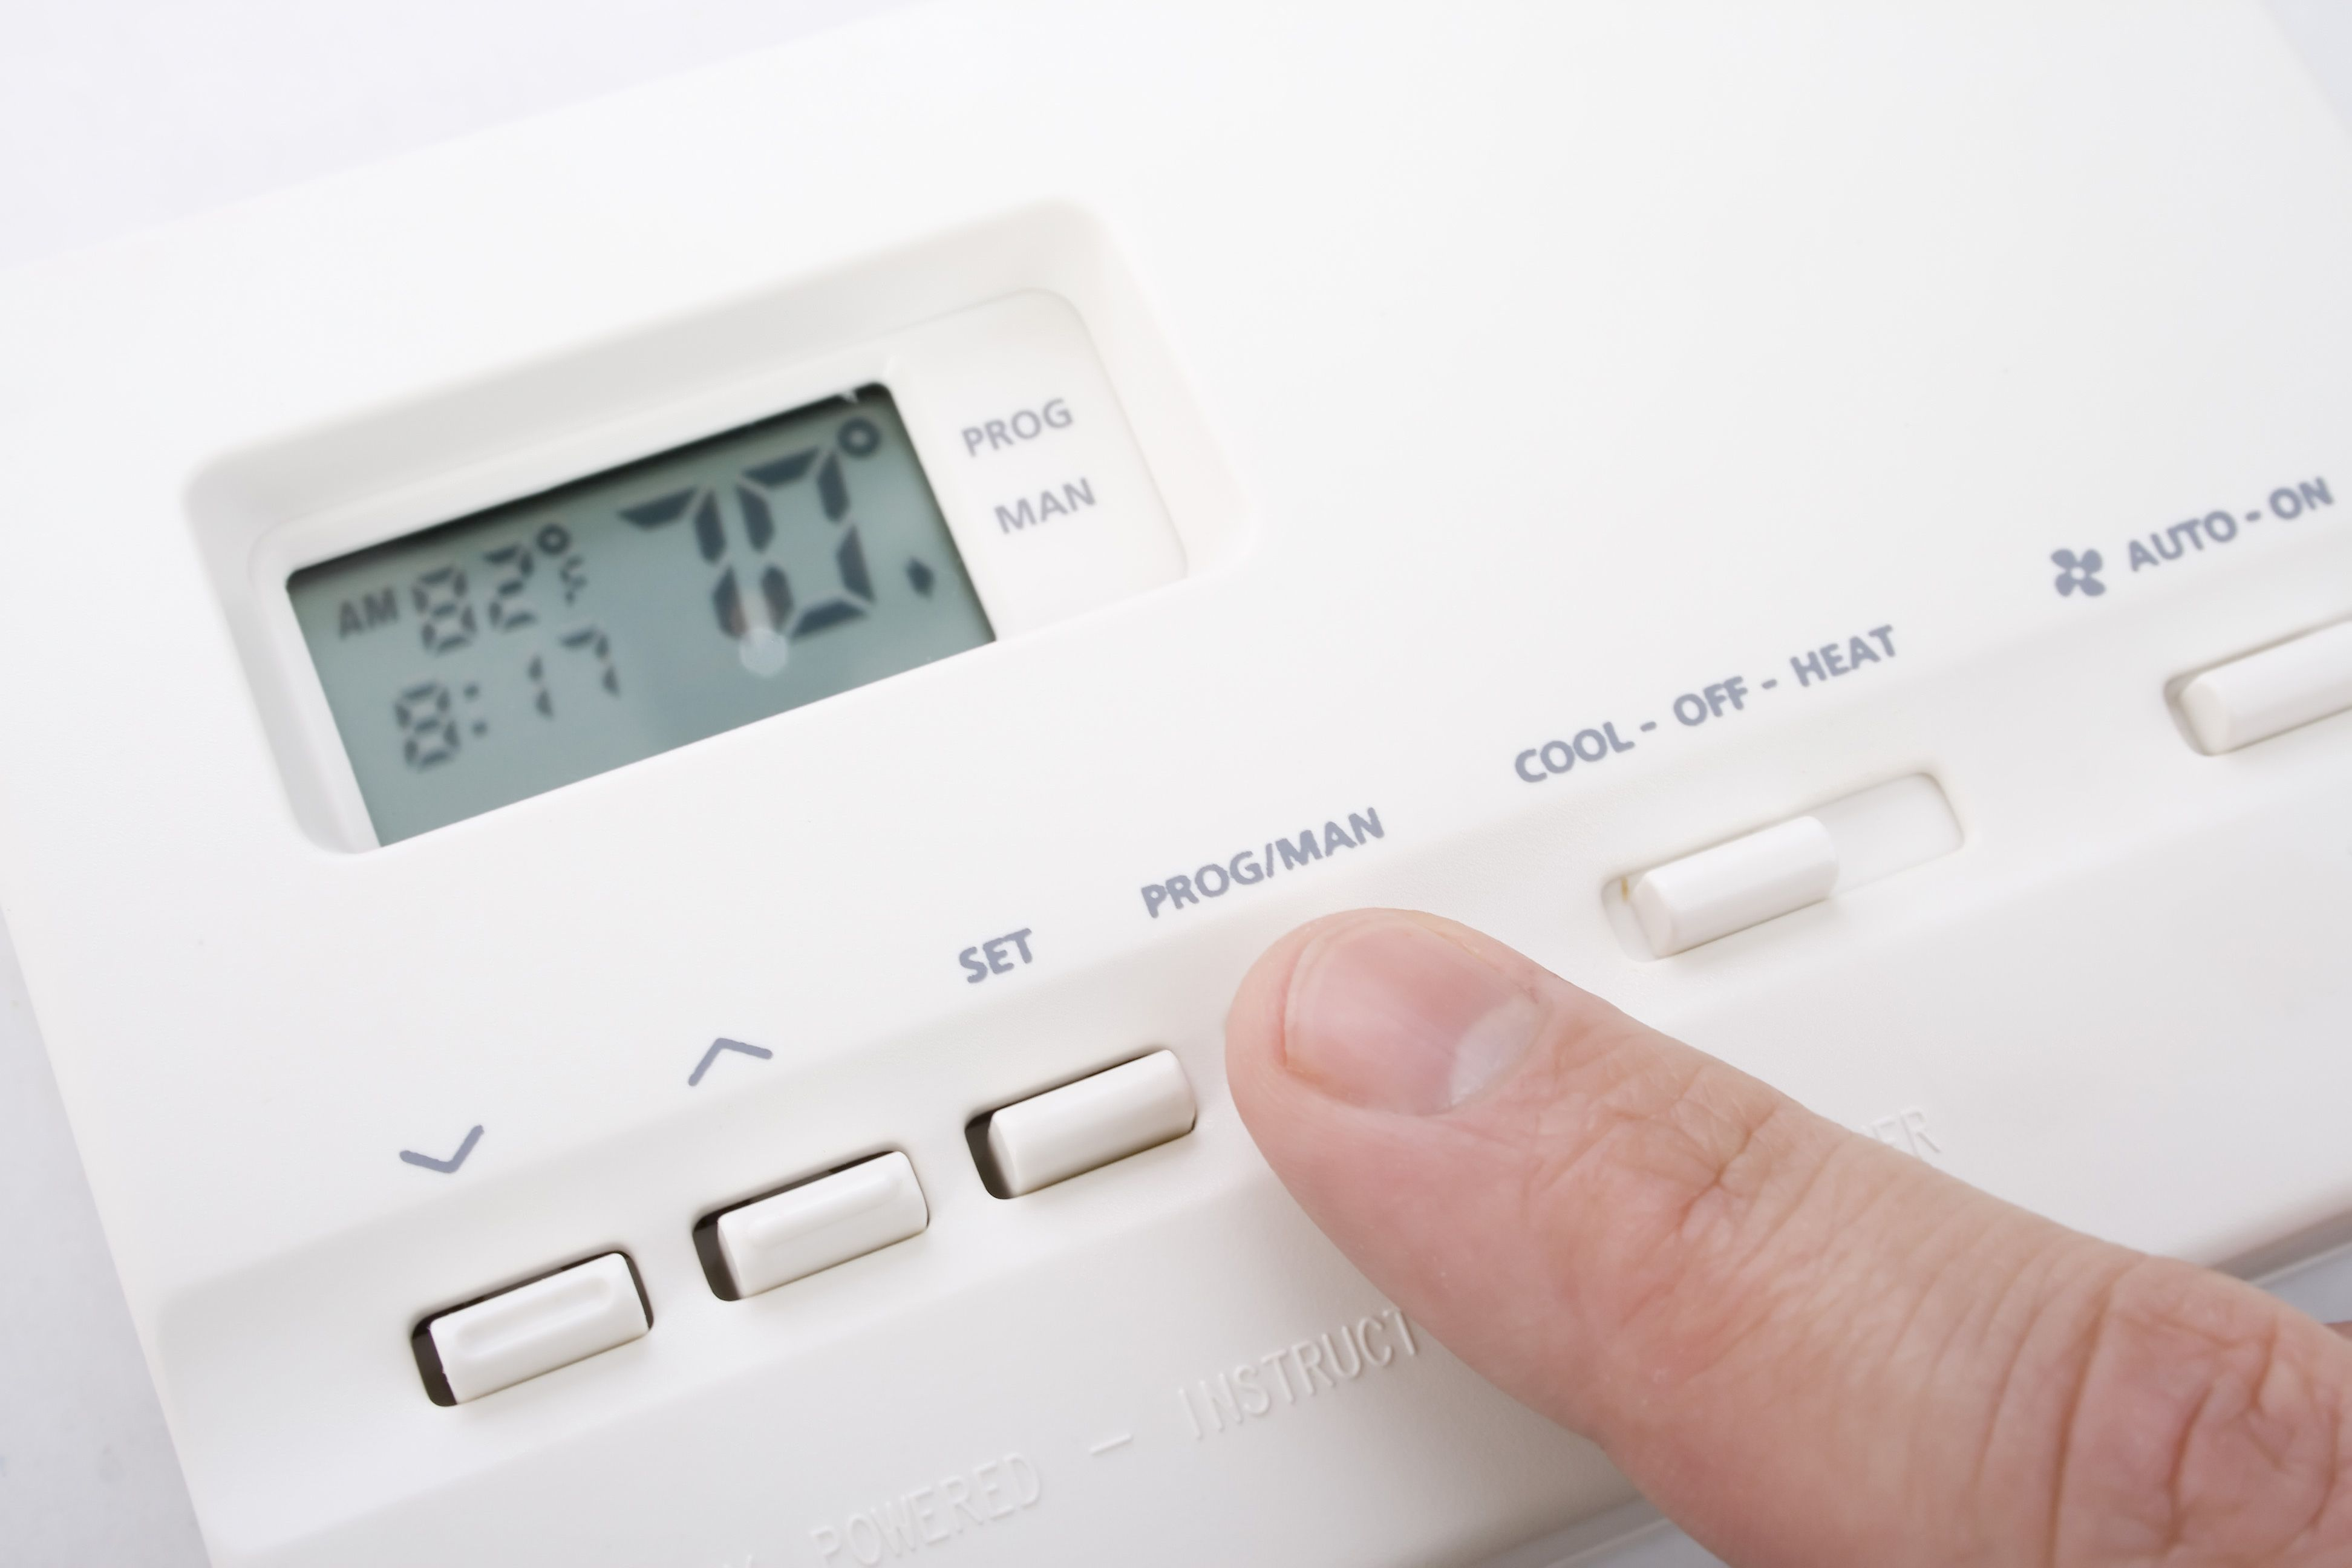 Home Air Conditioning Thermostat Problems